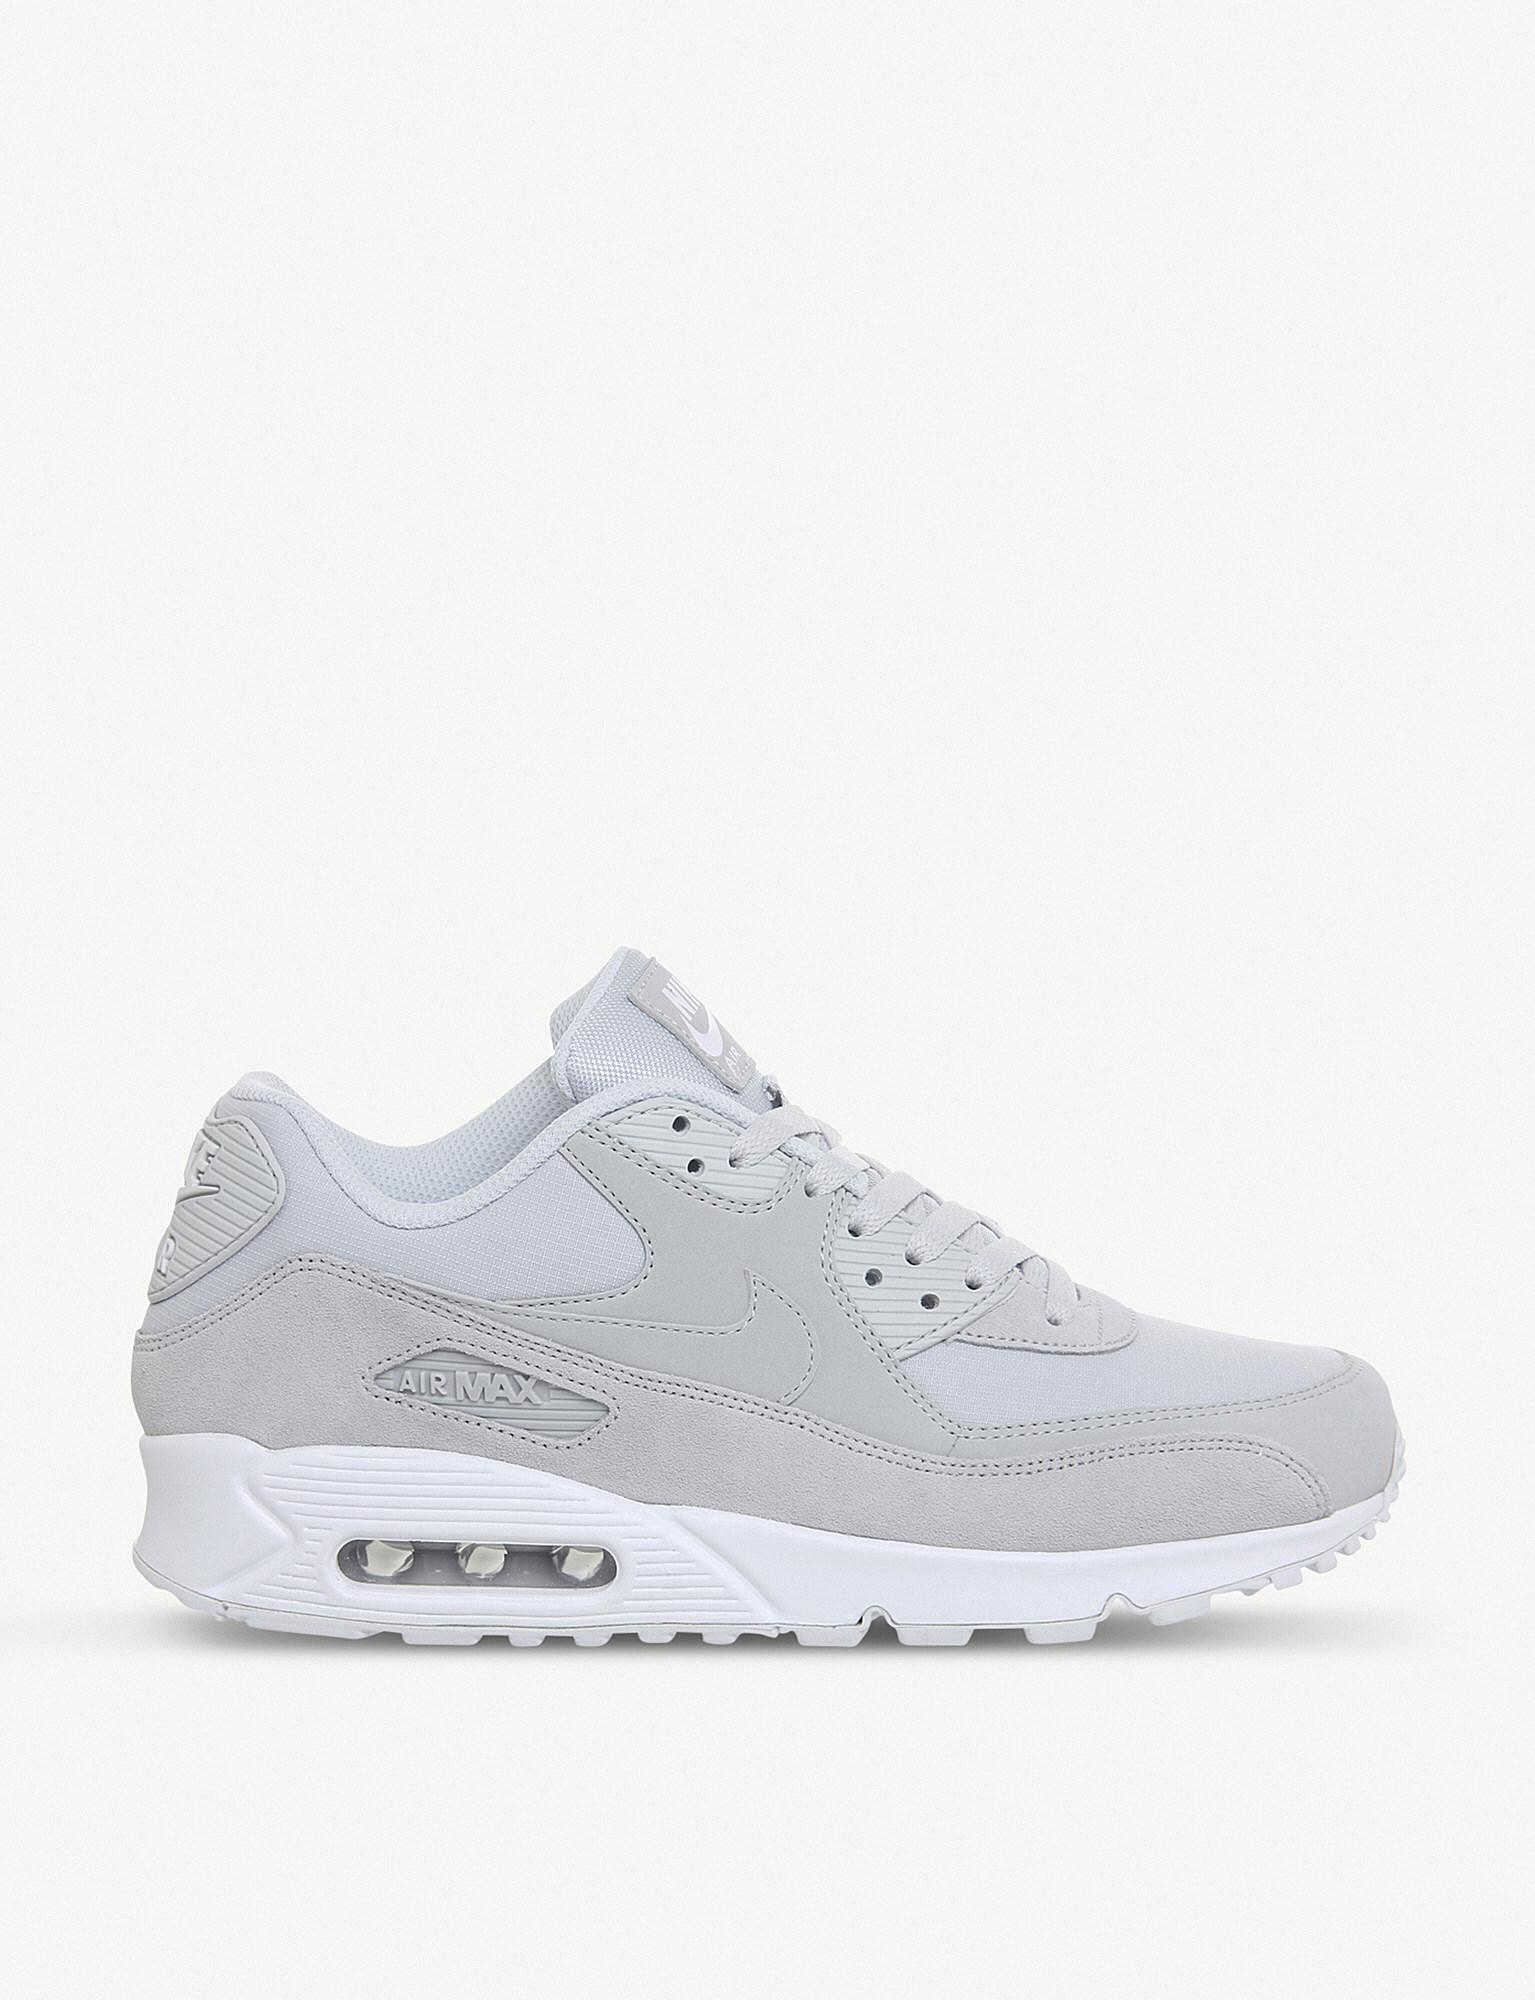 775ac16224 ... new zealand nike. mens white air max 90 mixed leather trainers 46776  fa443